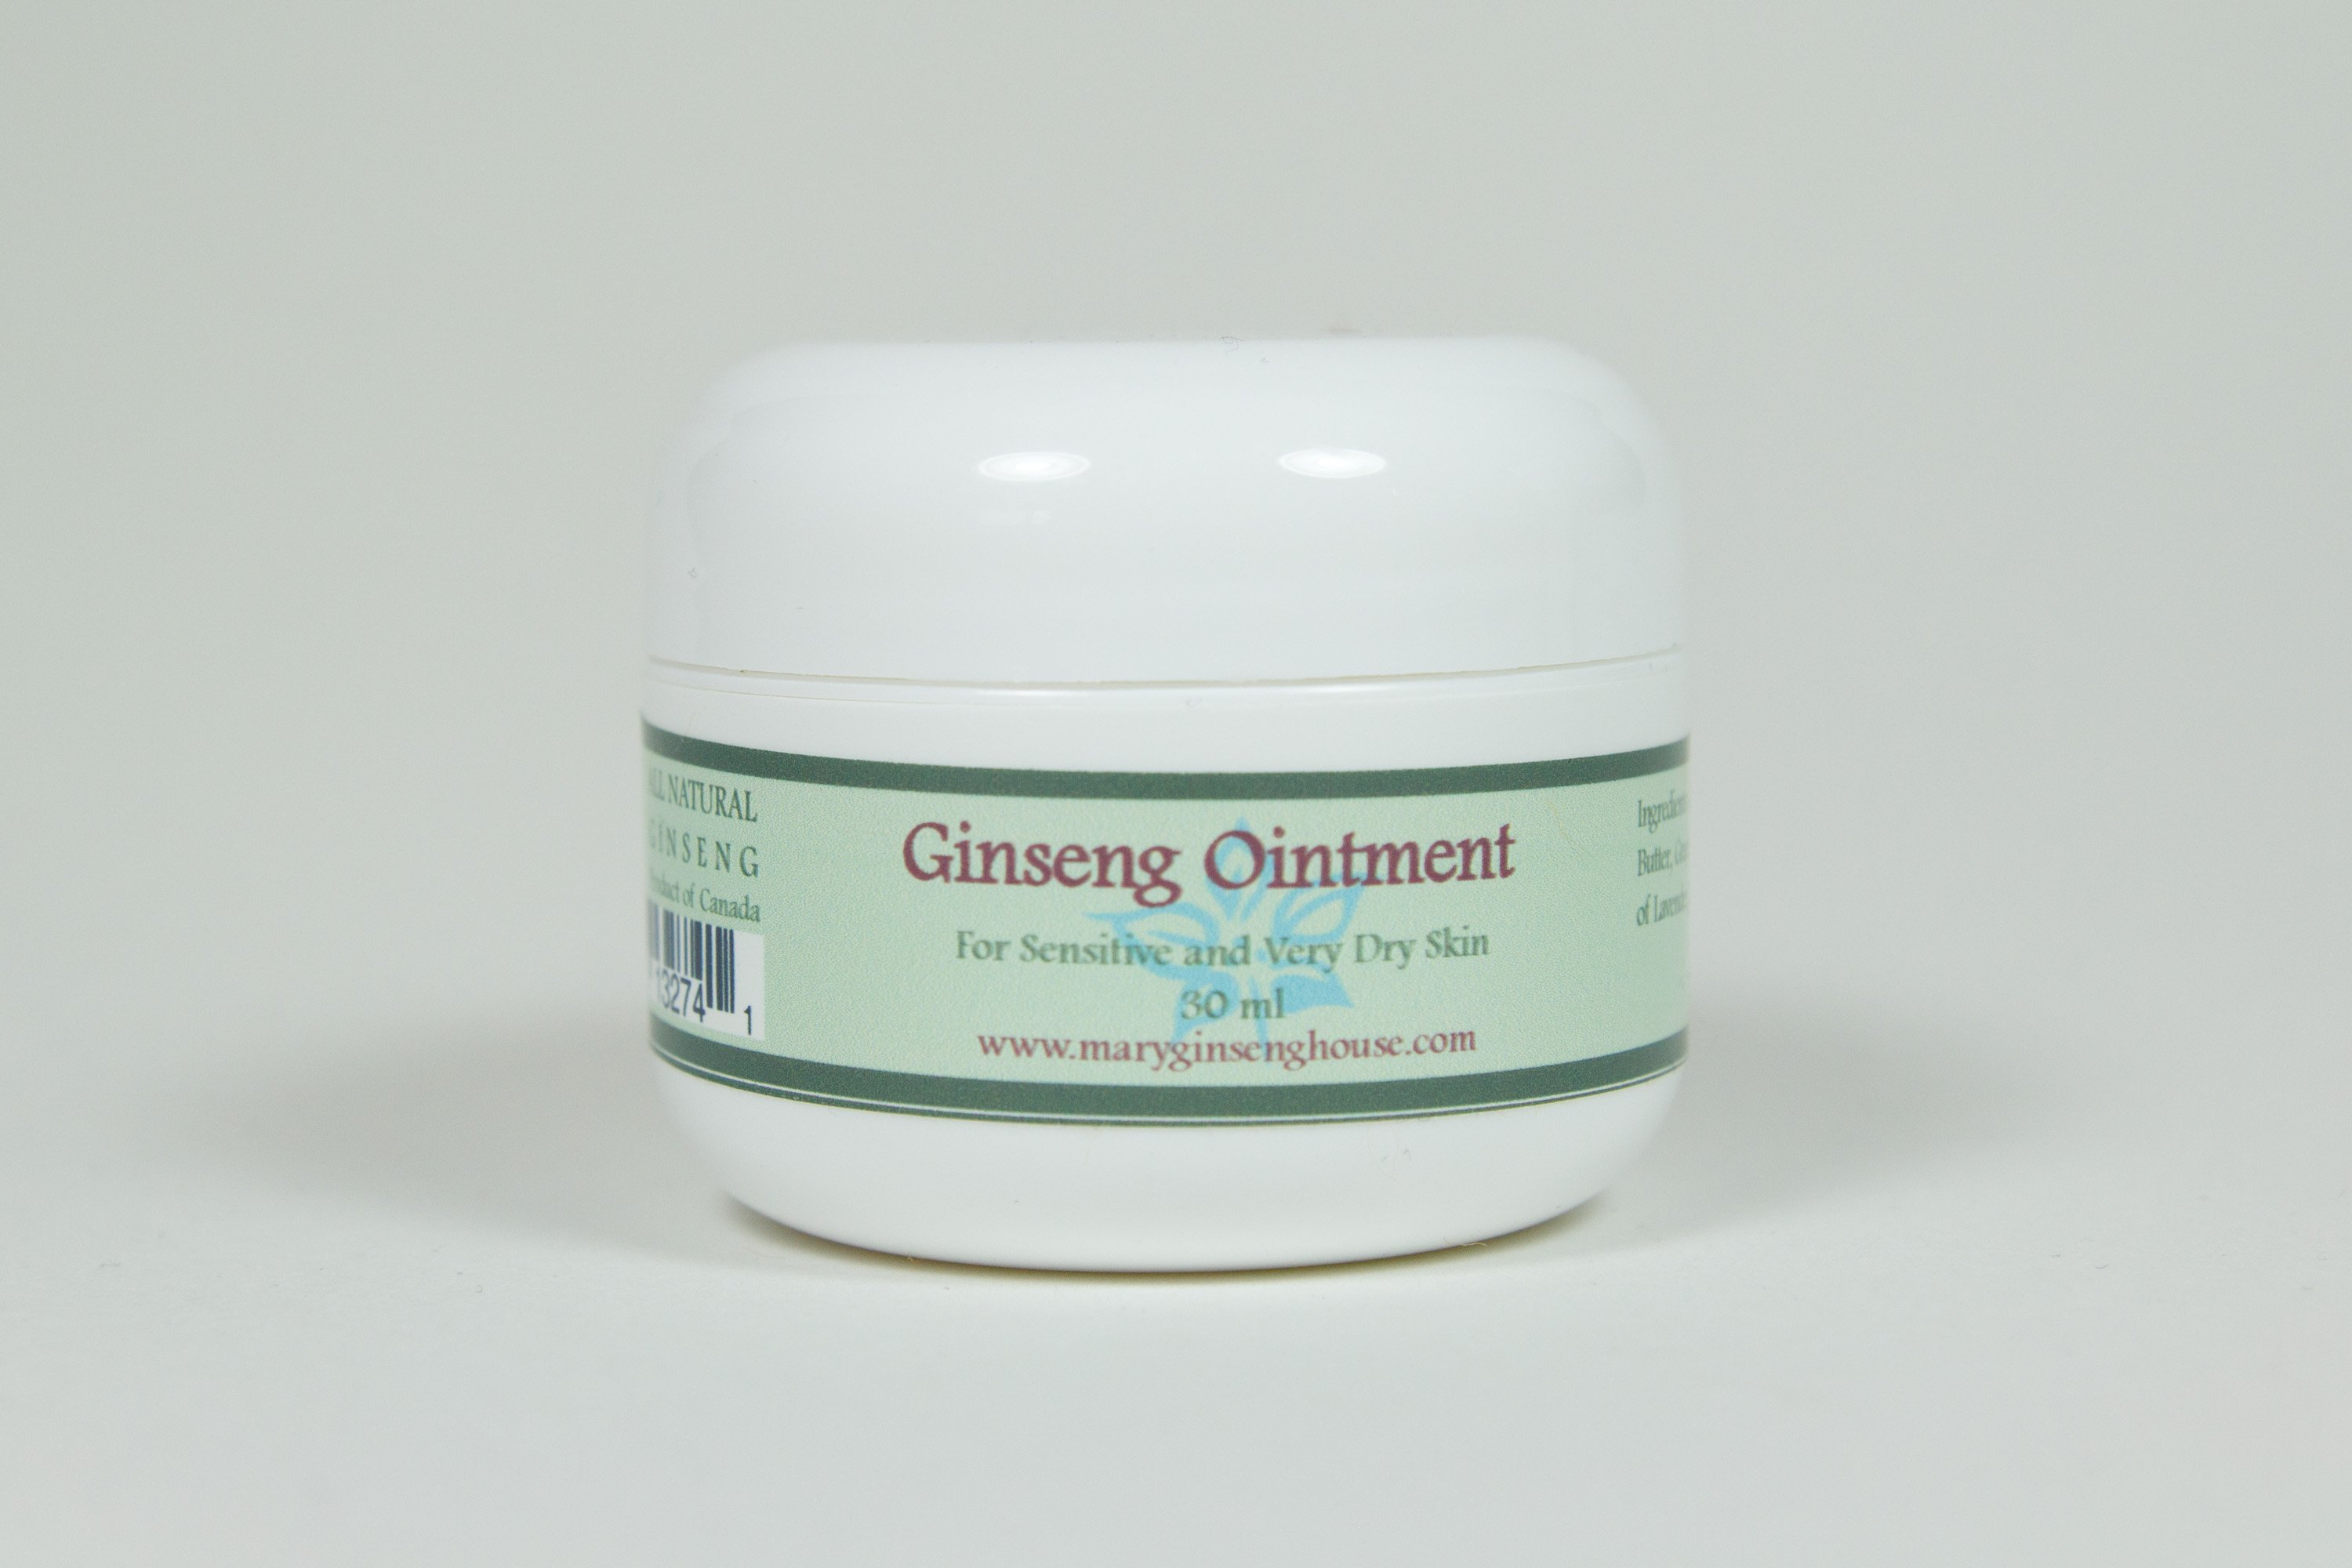 Ginseng Ointment (30 ml)